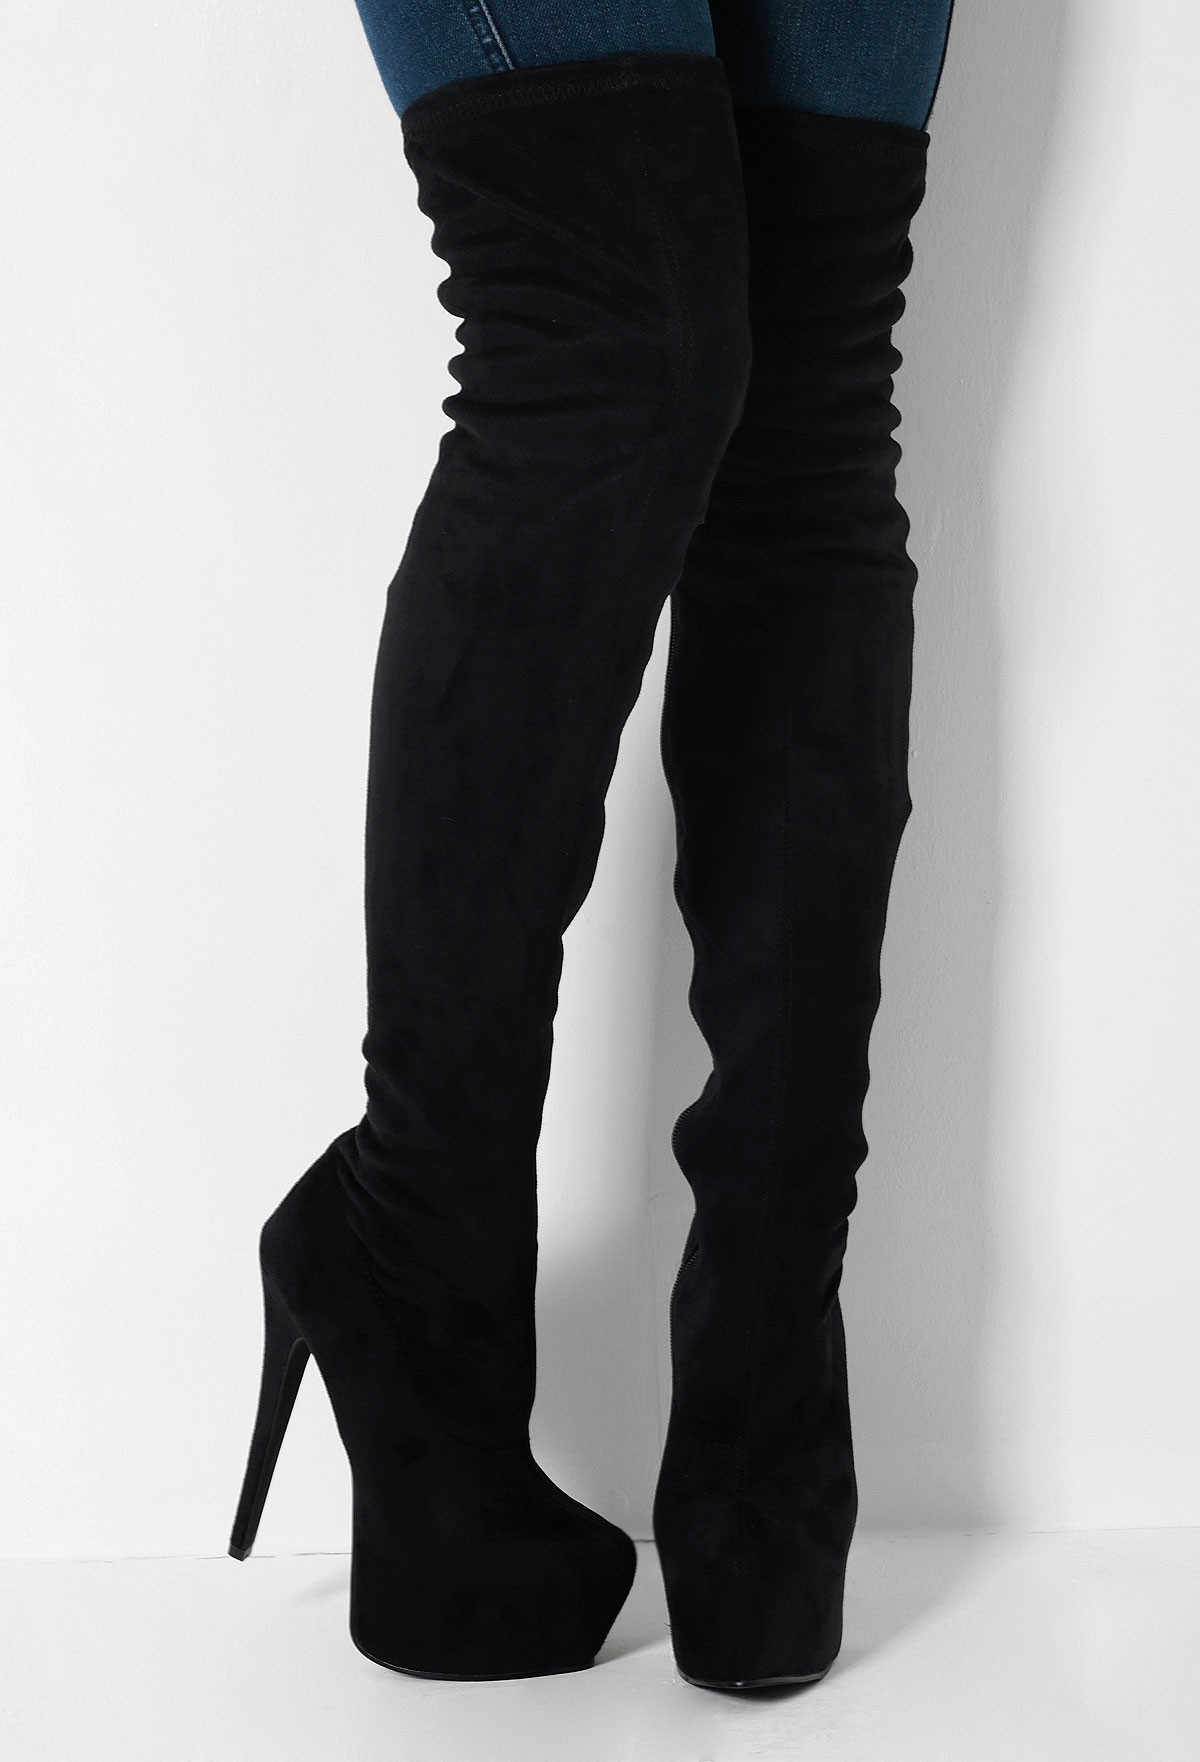 Platform Thigh High Boots B2aWt8R4